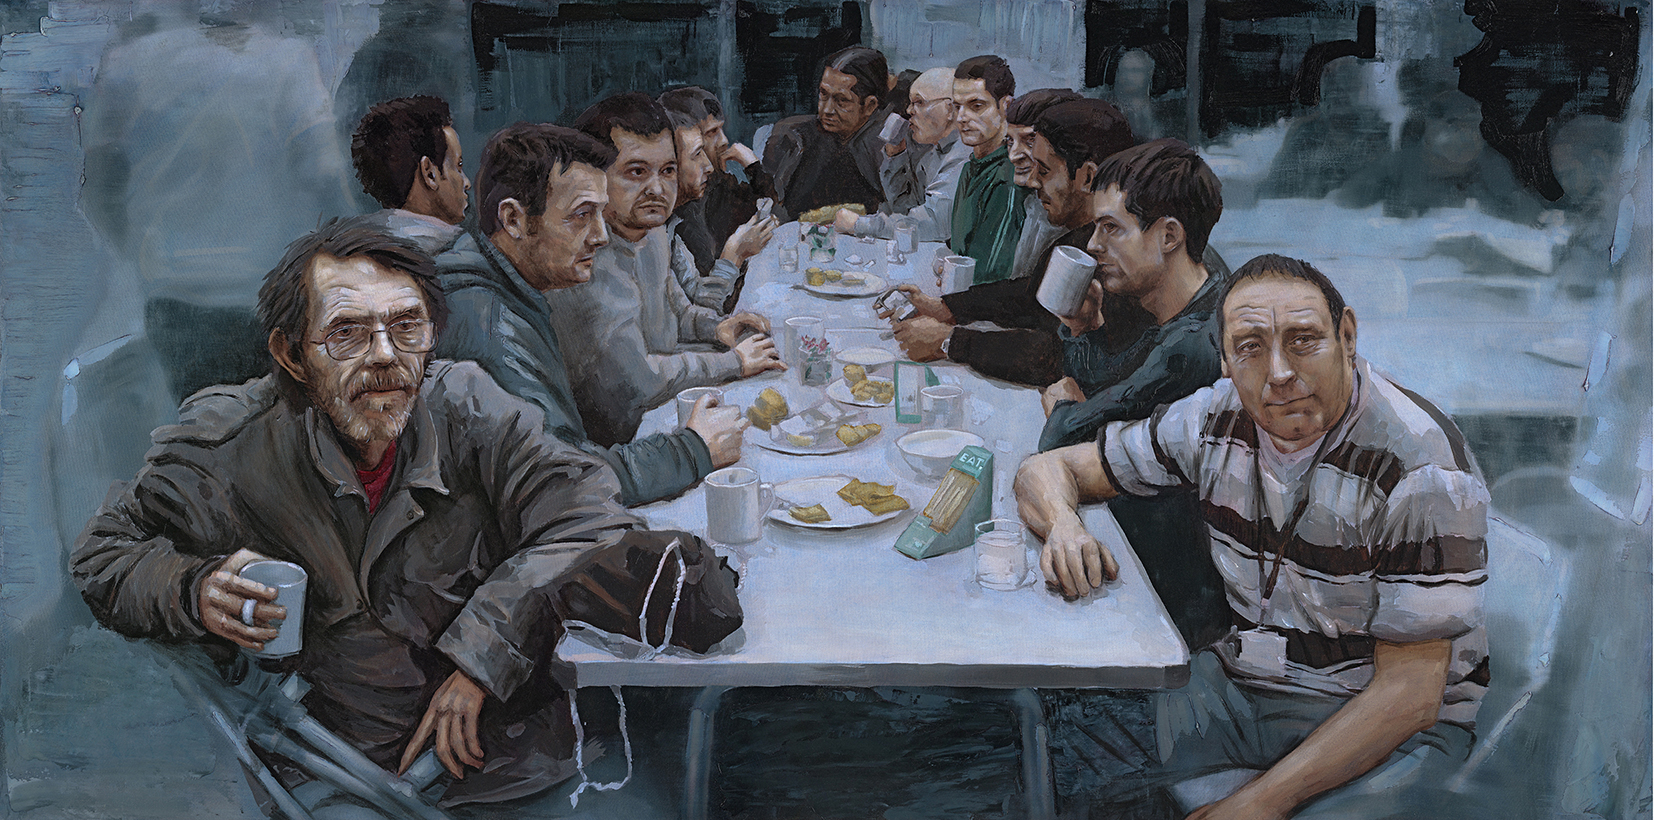 I.D Campbell's Our Last Supper, featuring guests of Glasgow City Mission, was painted in 2015